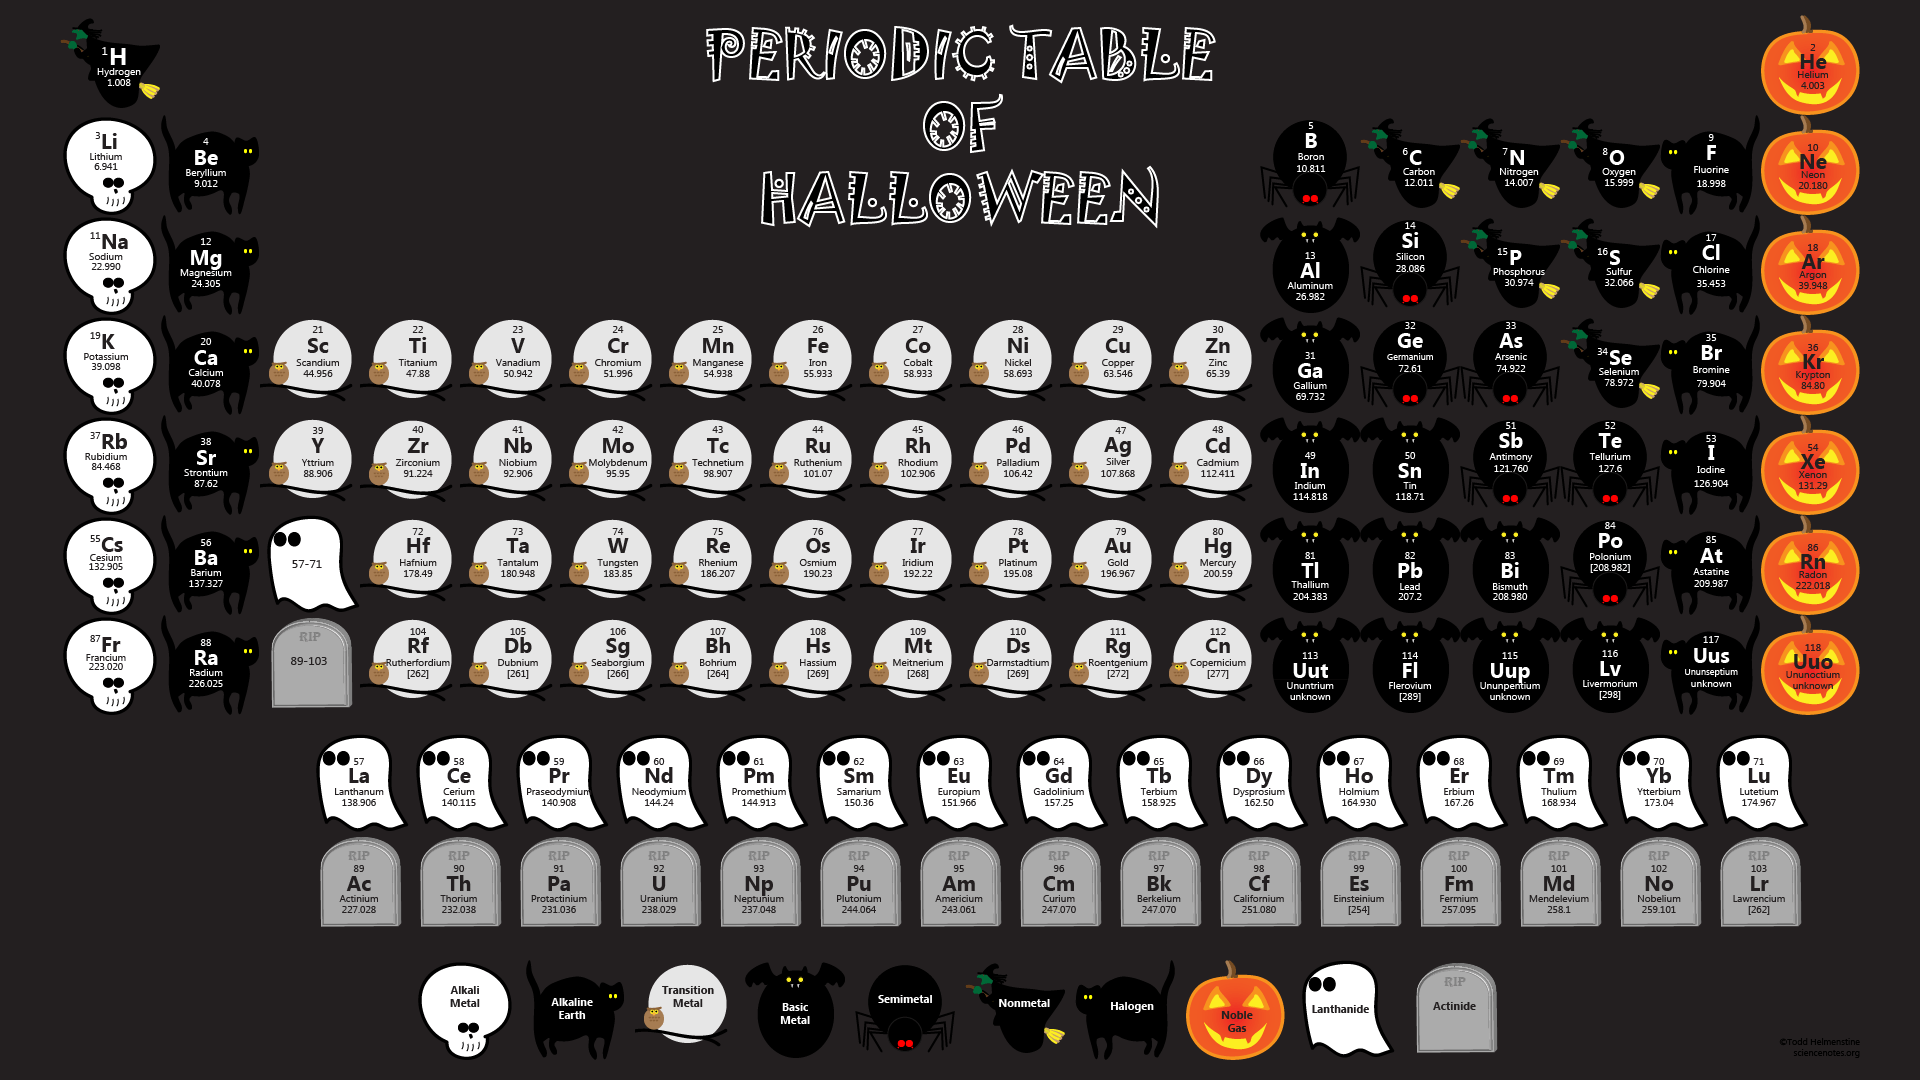 Halloween Periodic Table Wallpaper